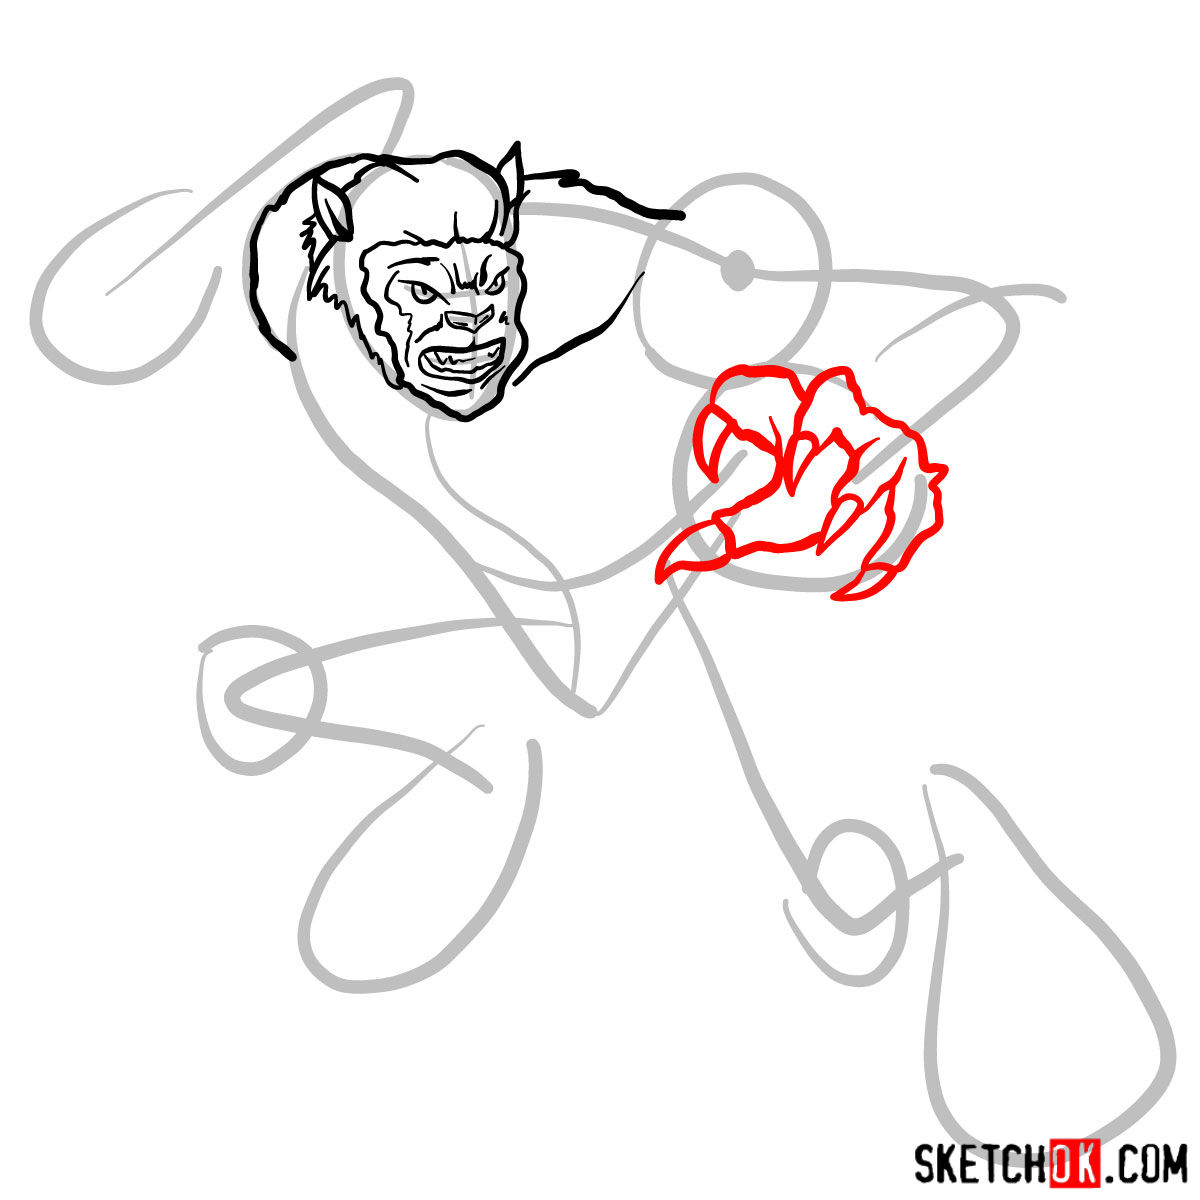 How to draw Beast (X-Men mutant) - step 06